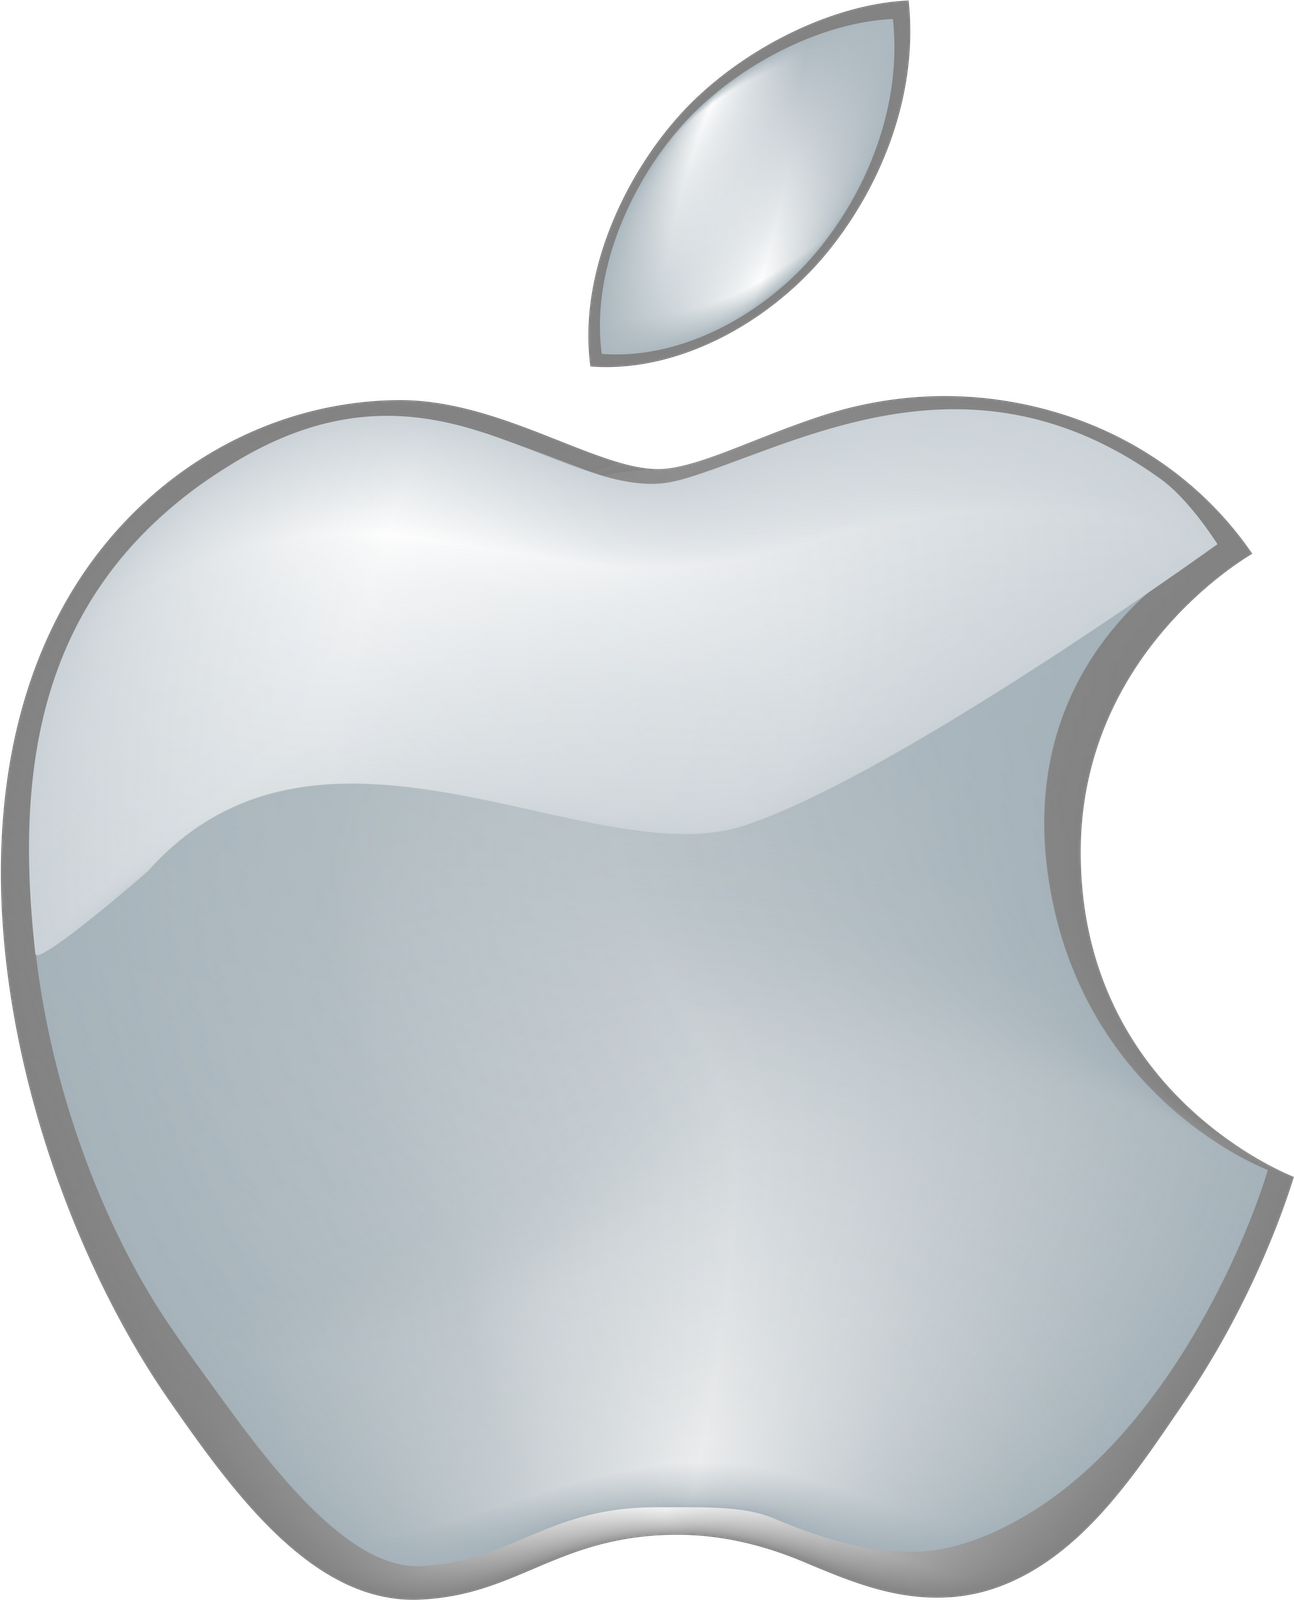 Images For > Apple Mail Png